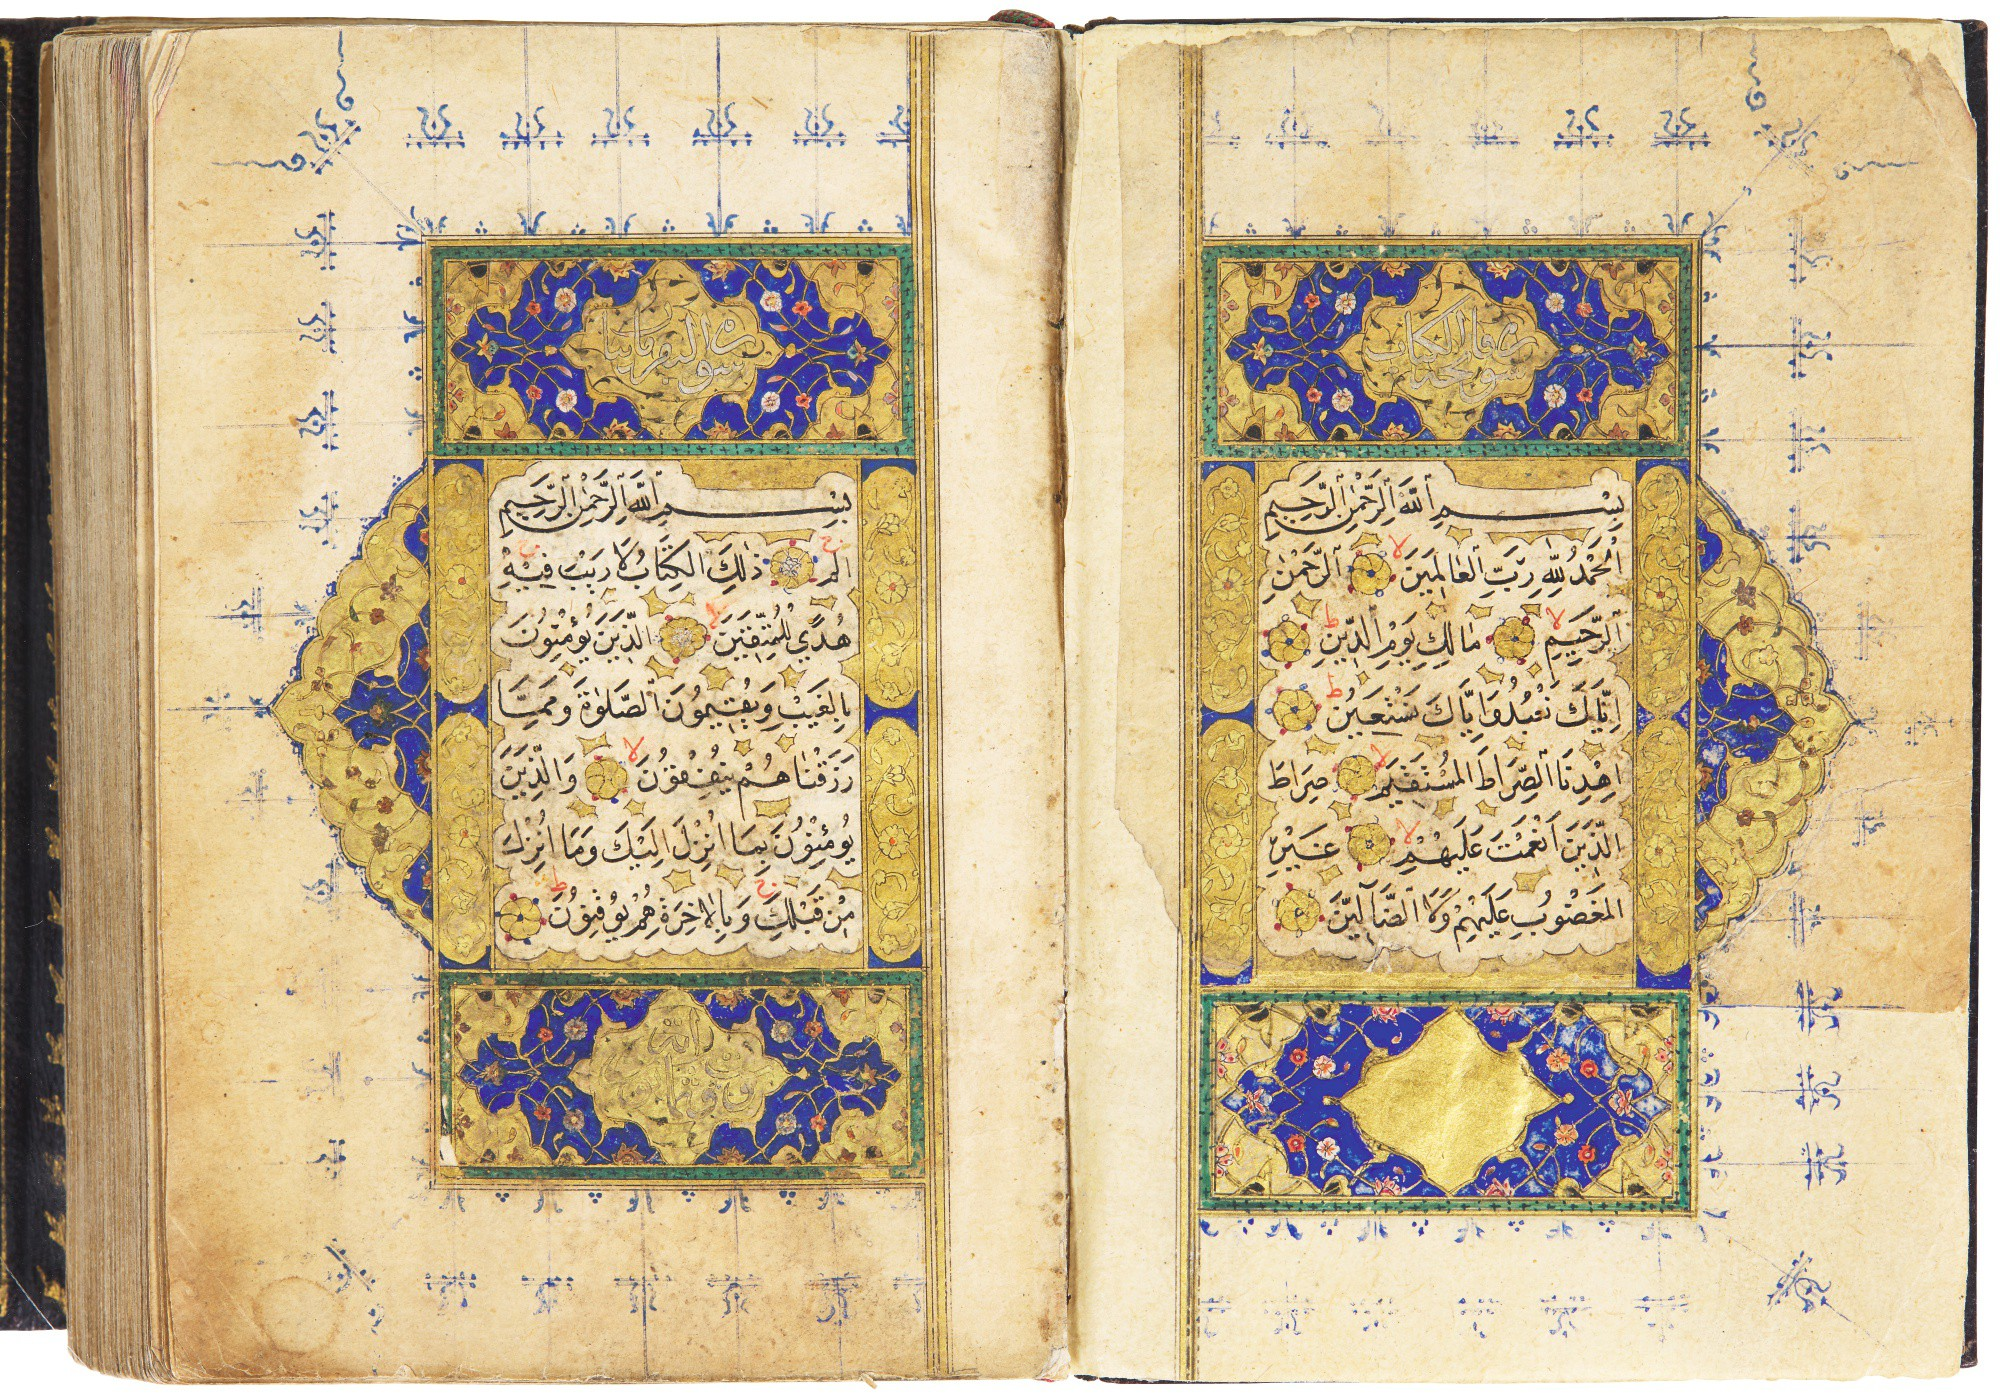 AN ILLUMINATED QUR'AN, COPIED BY SULEYMAN, STUDENT OF SELANIKI, TURKEY...